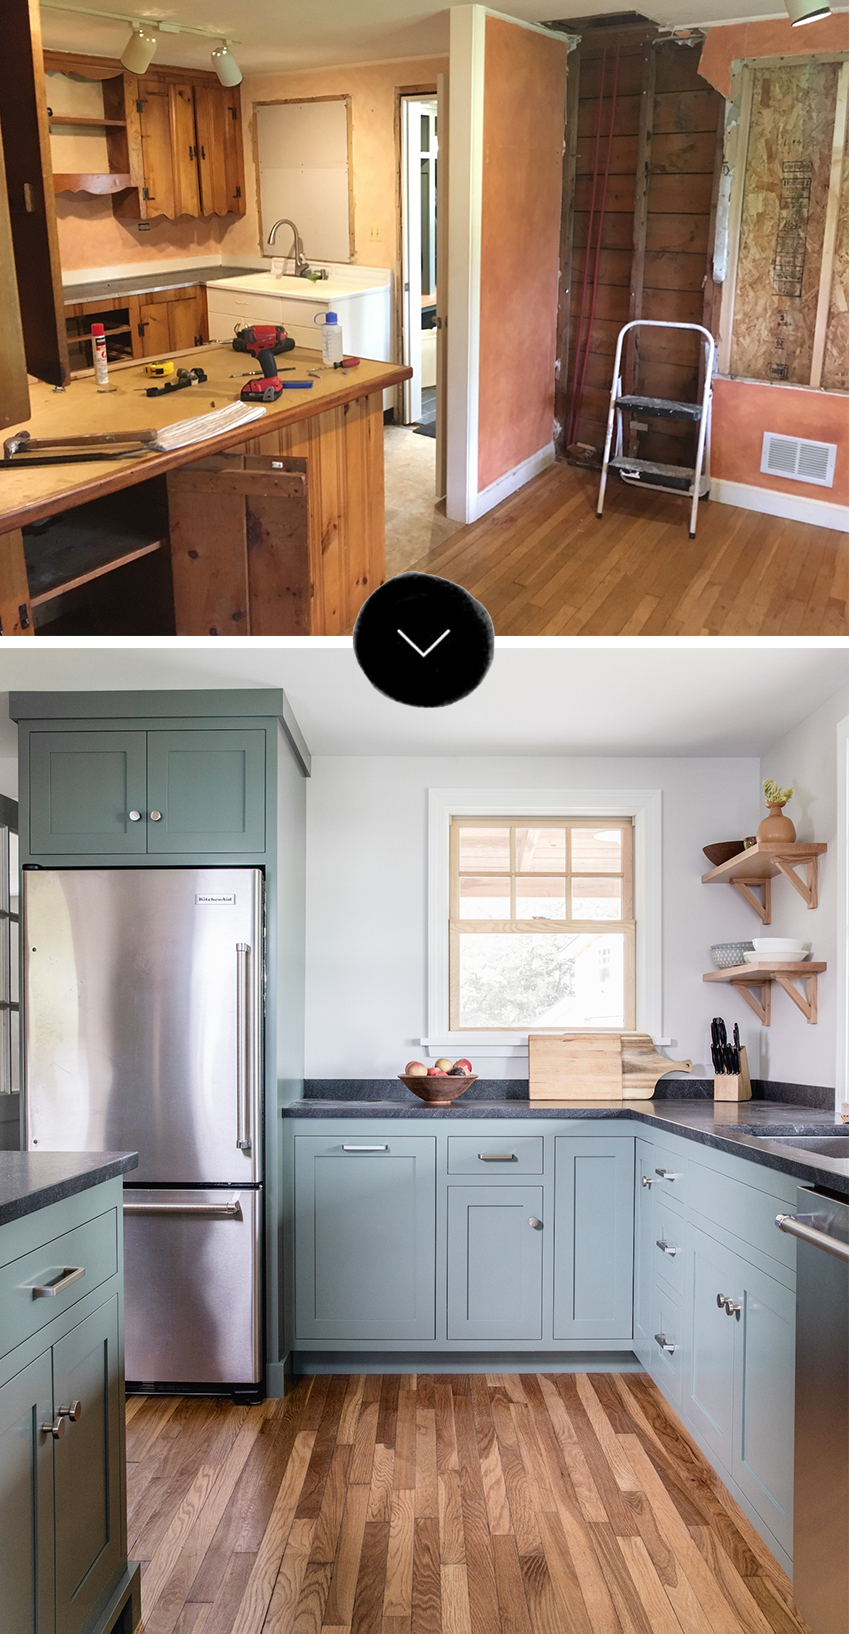 Before & After A Dated Kitchen Rebuilt With Impeccable